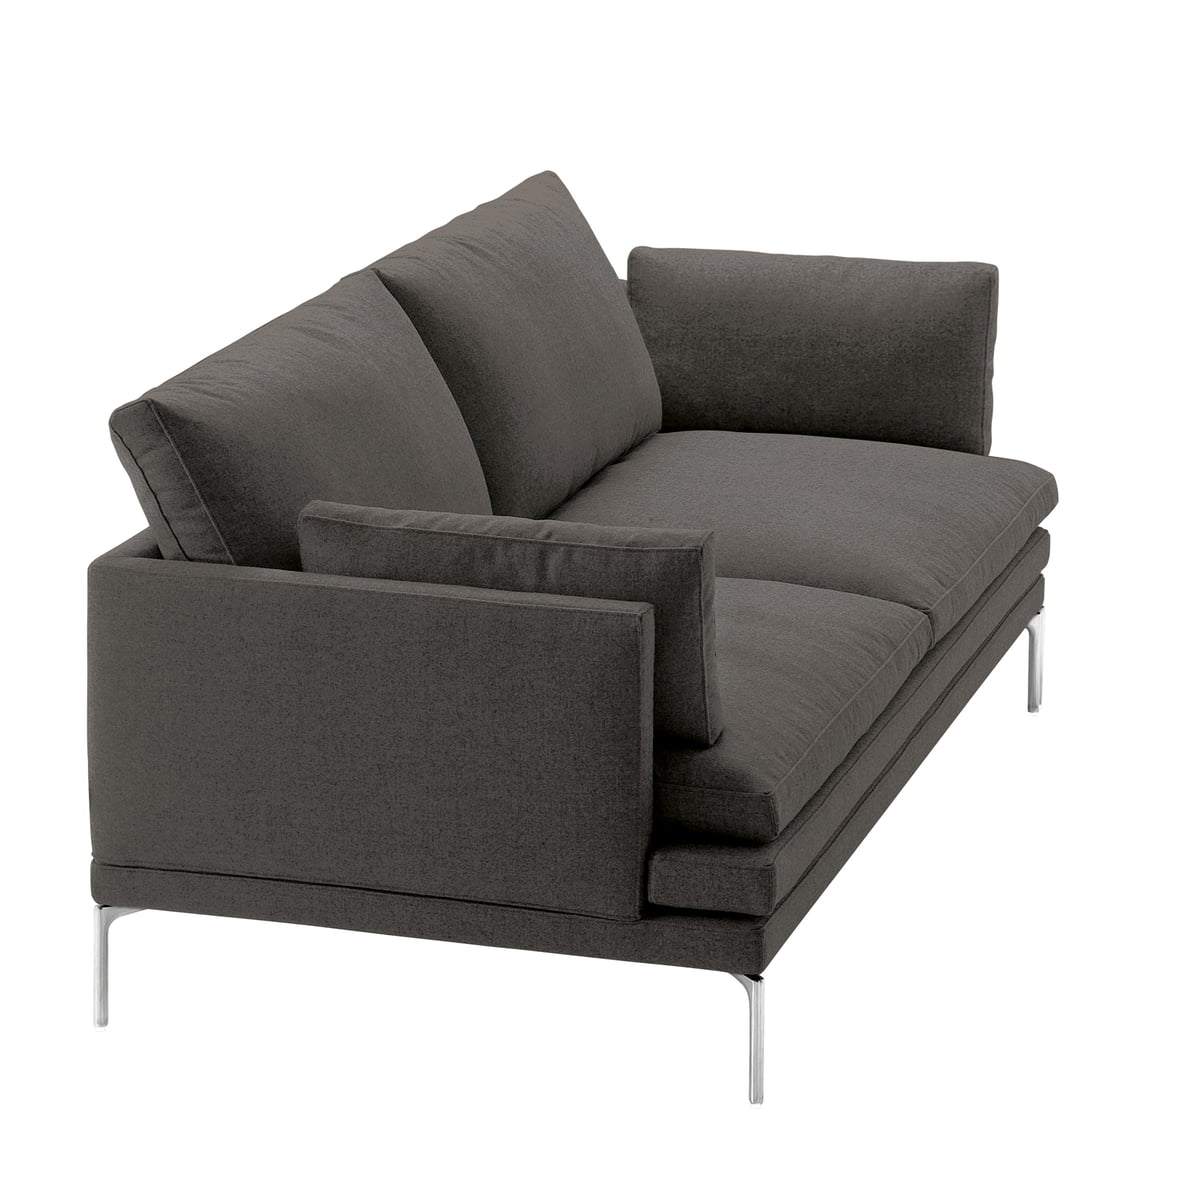 The william sofa by zanotta in the shop for Sofa 1 80 breit